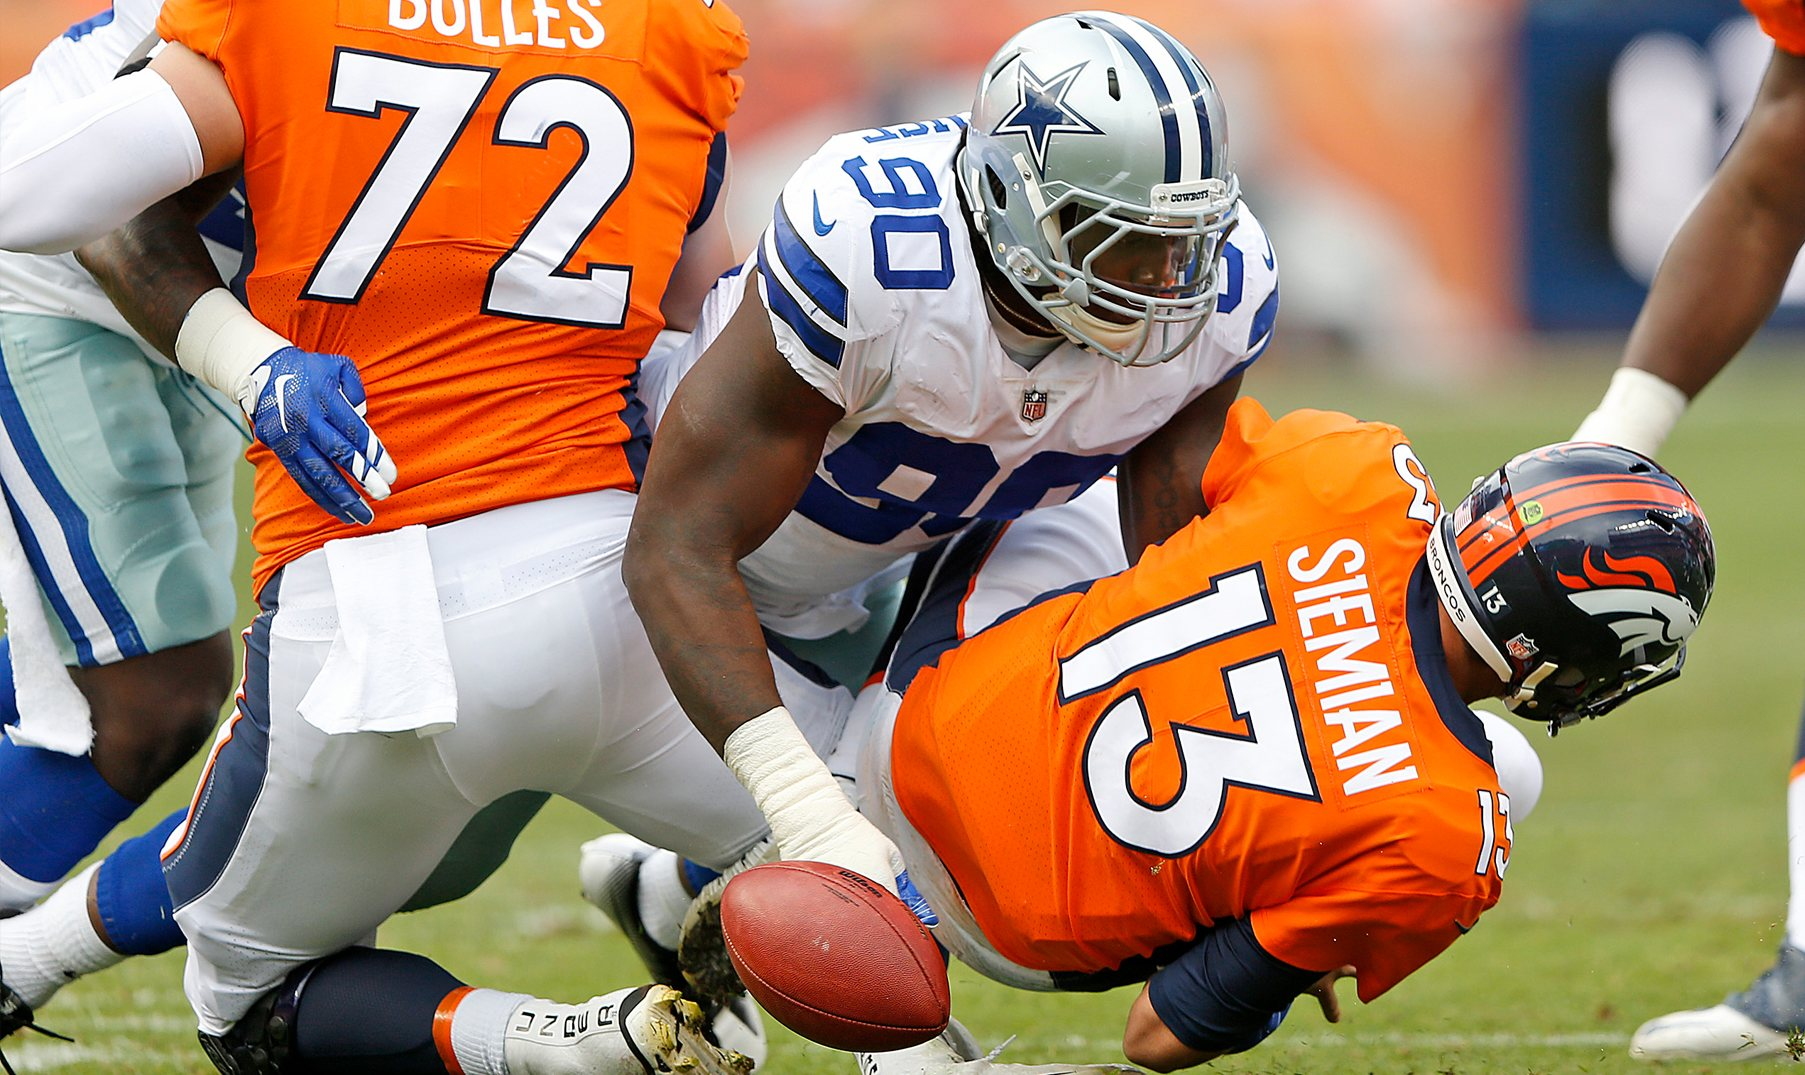 Jess-haynie_dallas-cowboys_broncos-give-young-cowboys-some-new-lessons-3